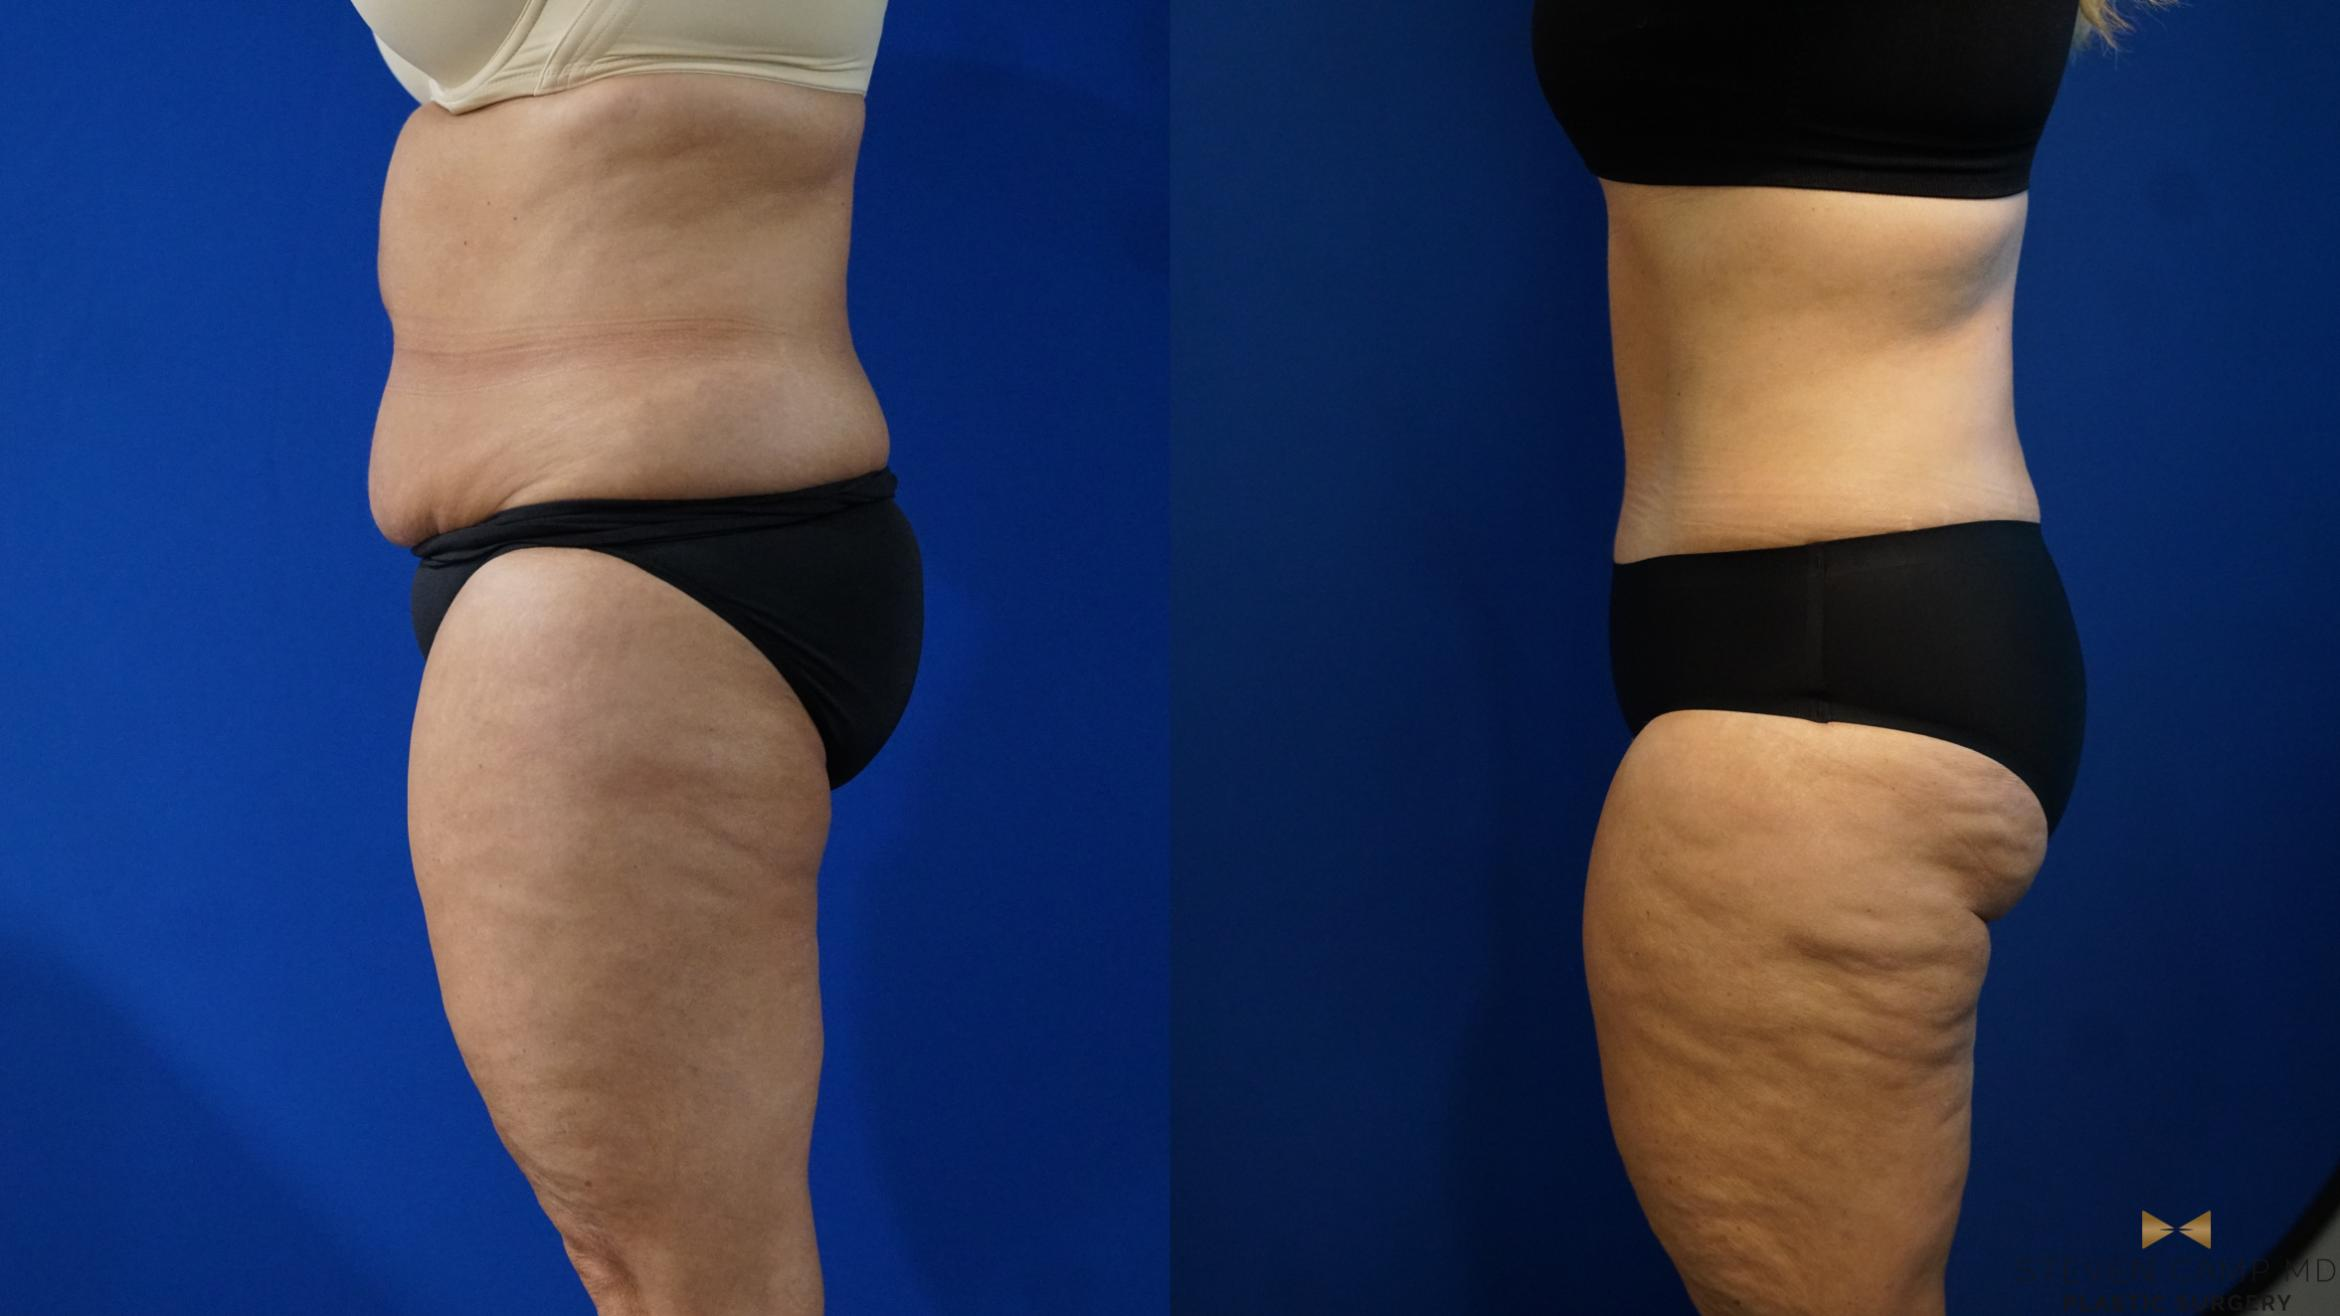 Tummy Tuck Before & After Photo | Fort Worth, Texas | Steven Camp MD Plastic Surgery